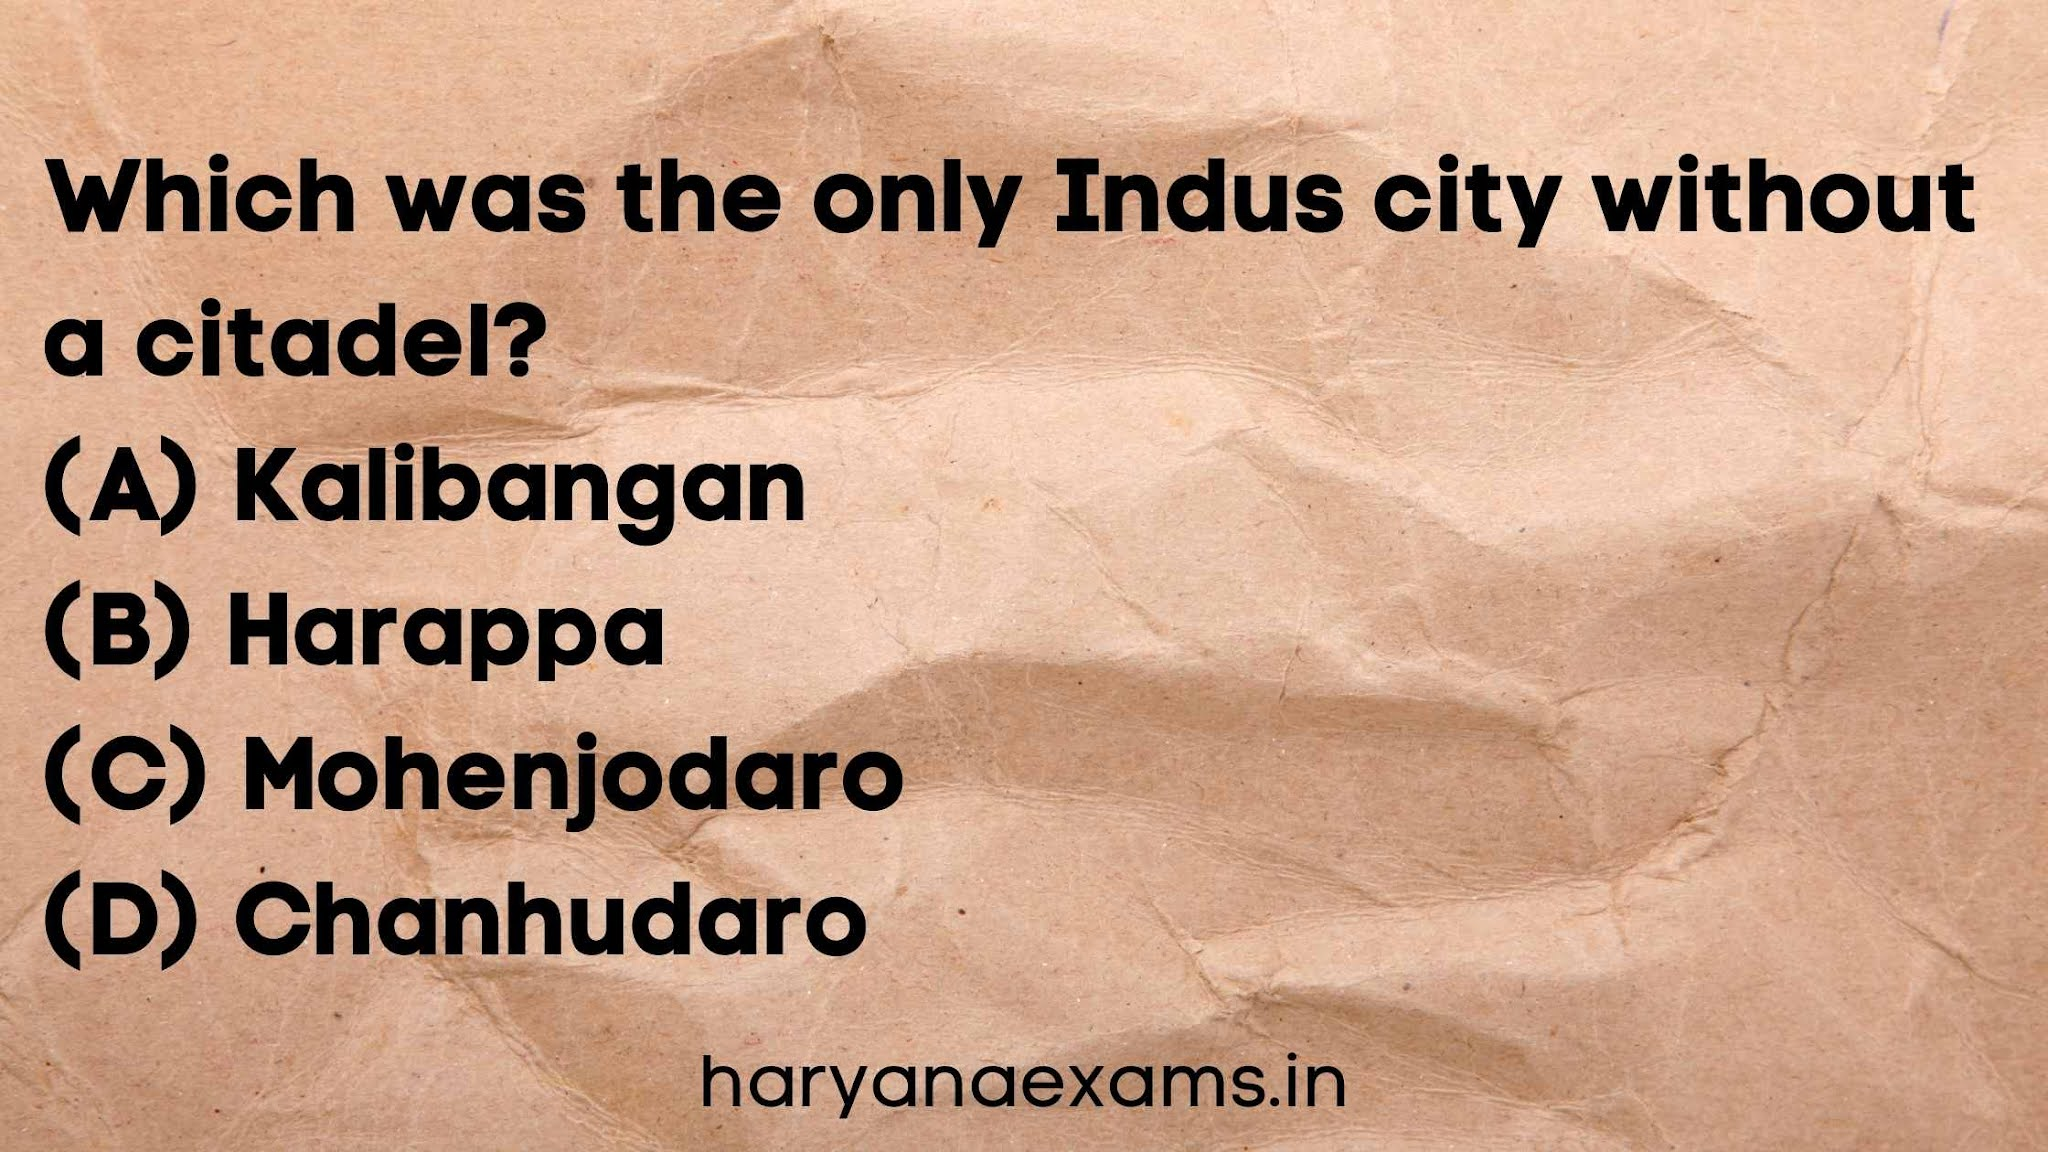 Which was the only Indus city without a citadel?   (A) Kalibangan   (B) Harappa   (C) Mohenjodaro   (D) Chanhudaro